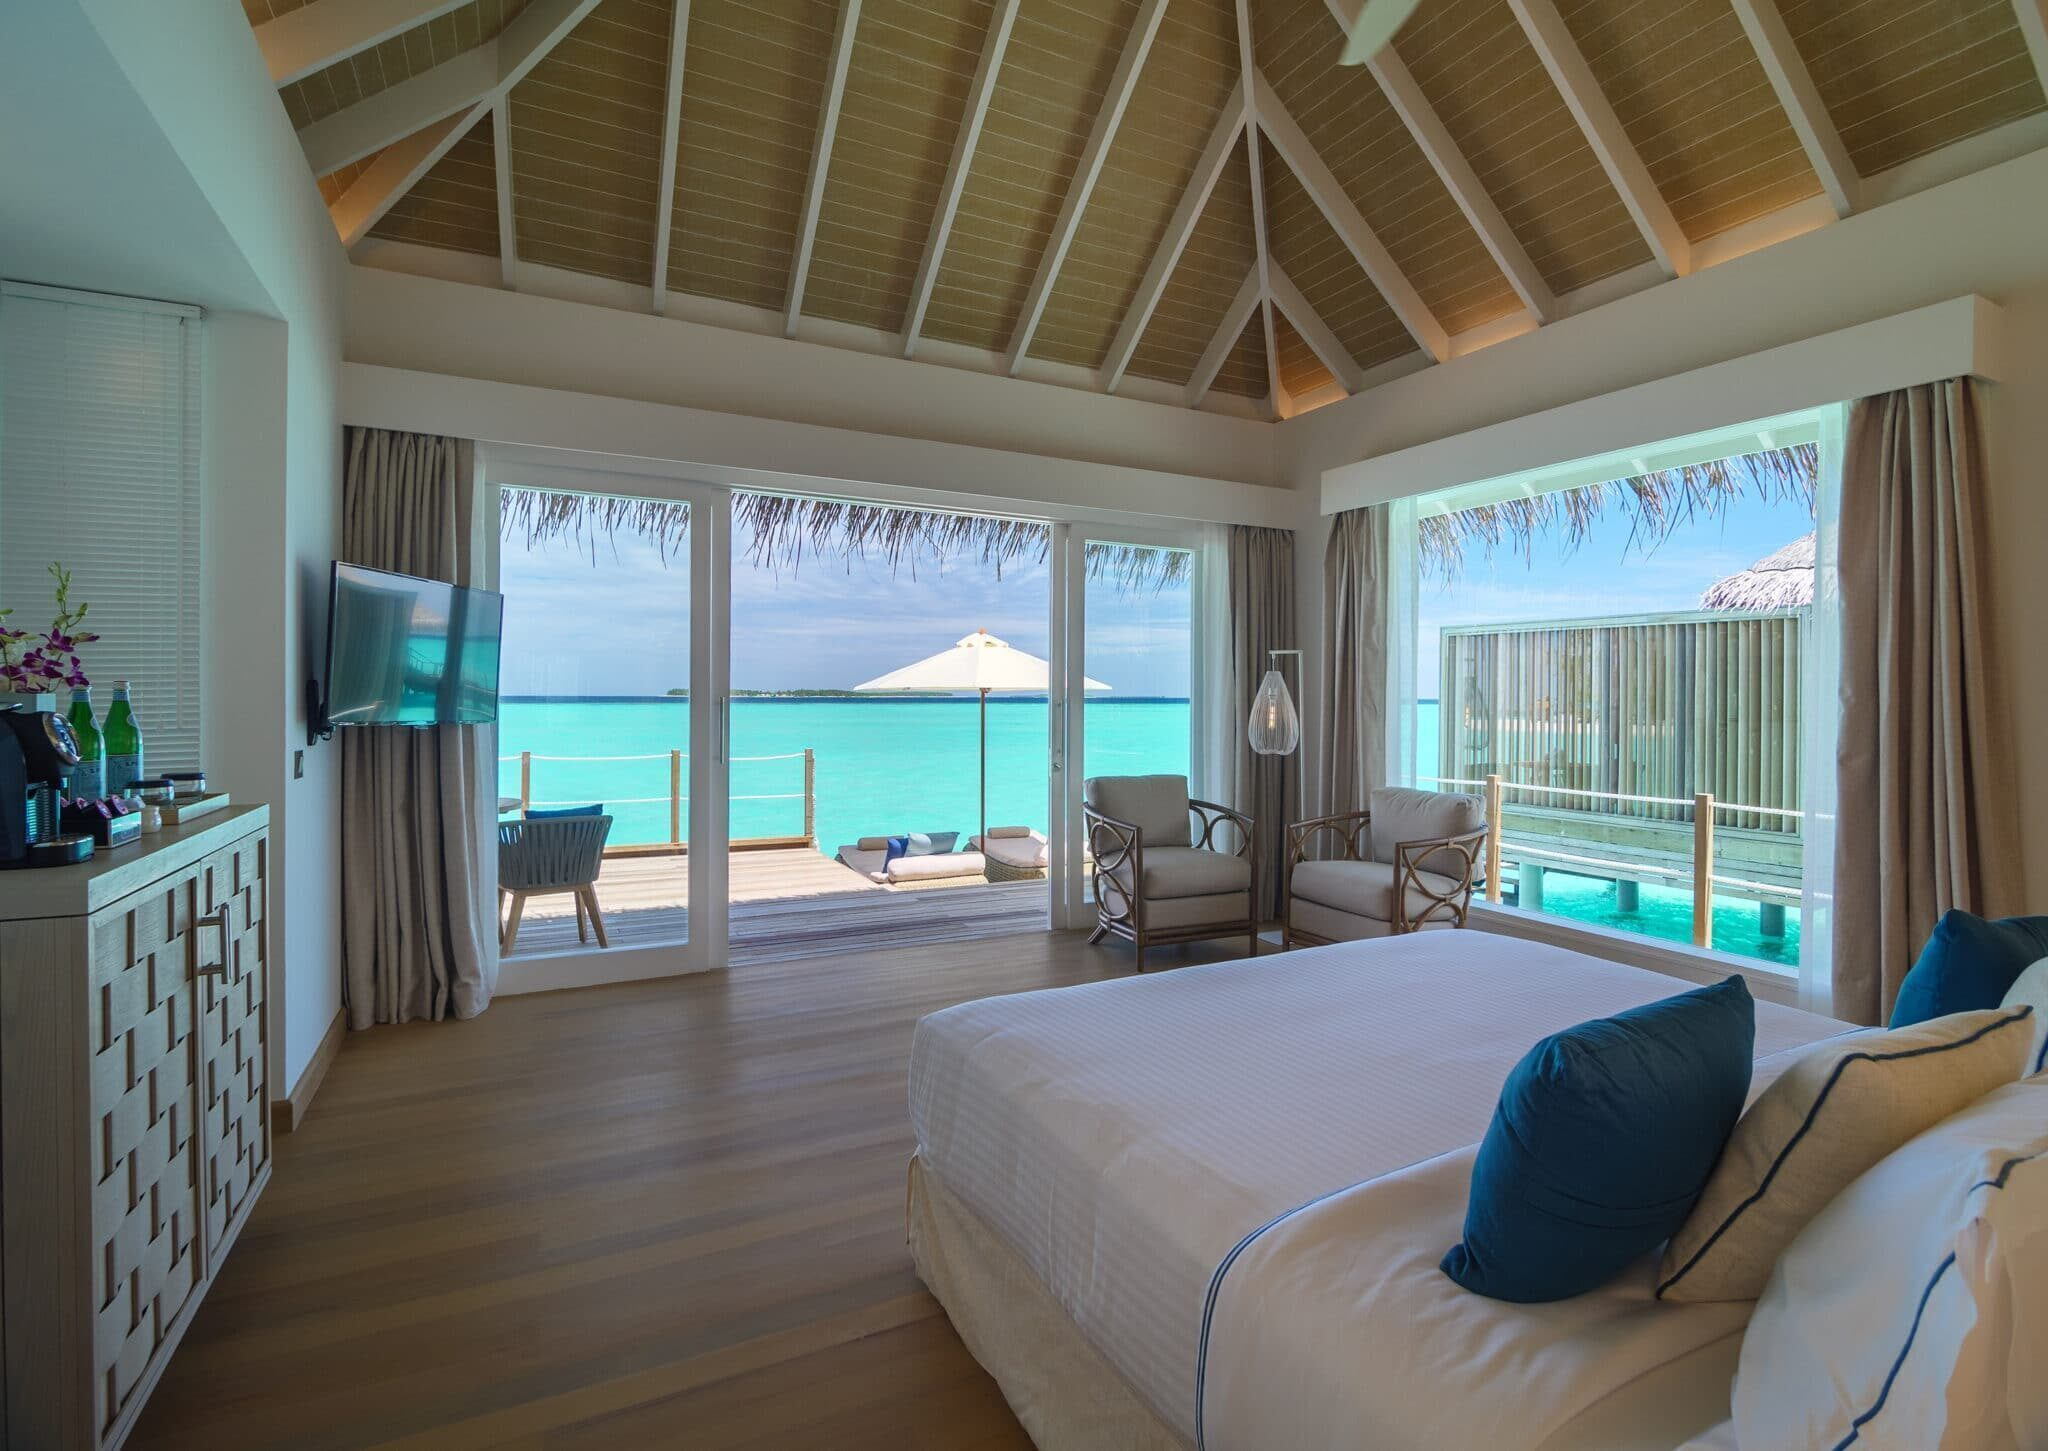 Italian spirit in the Maldives: Baglioni Resort